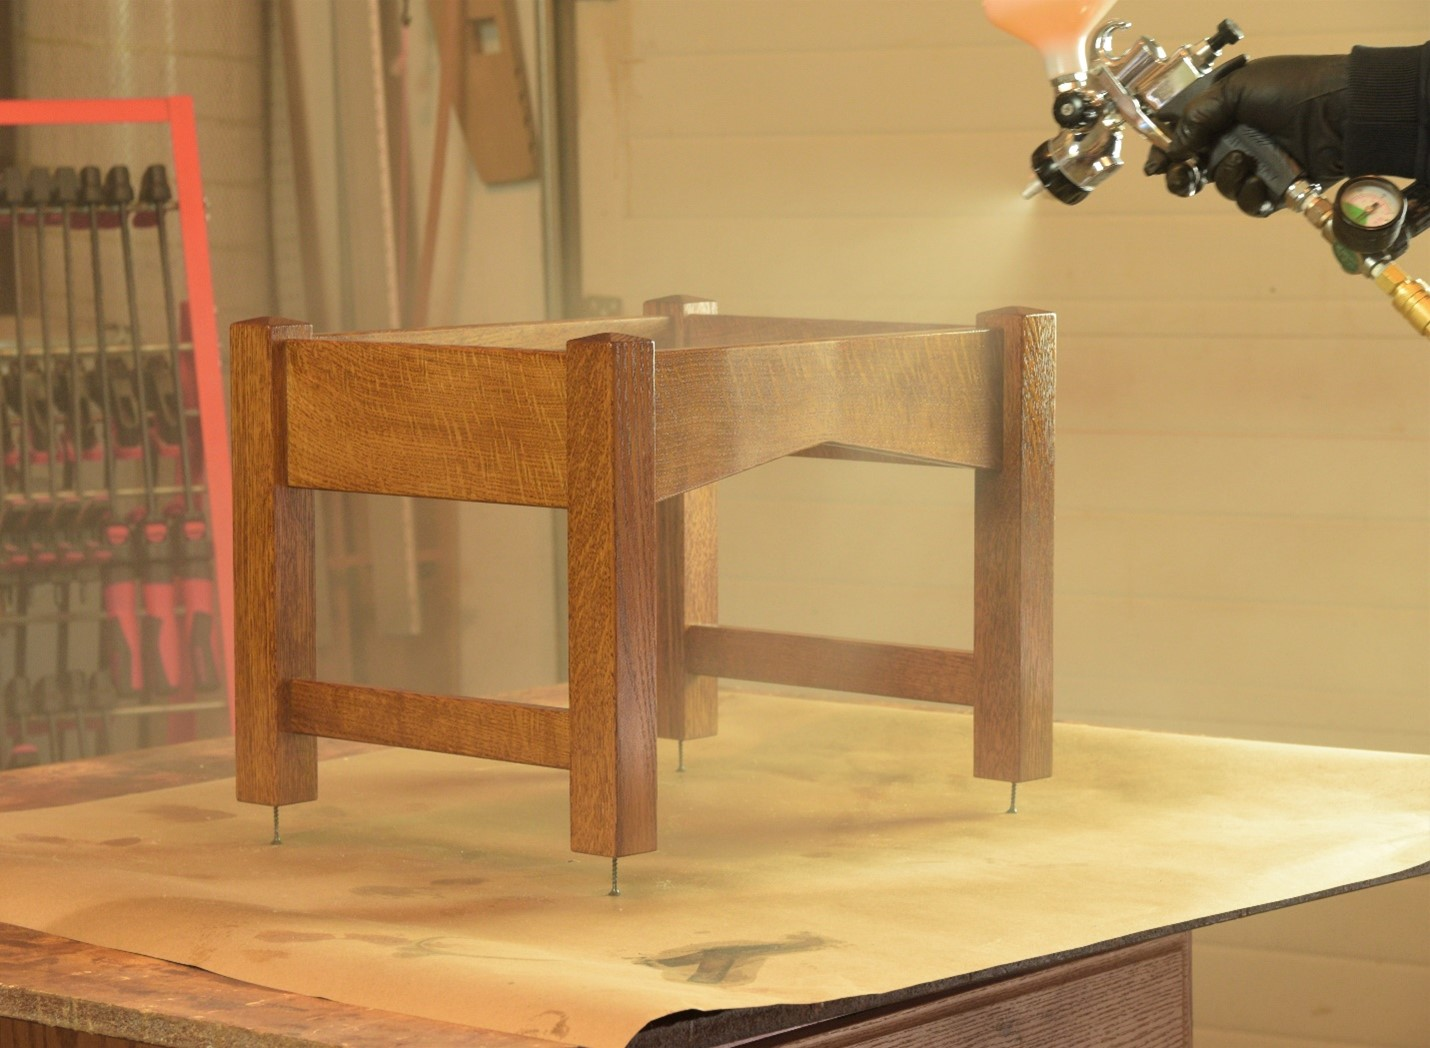 using a sprayer to get an even layer of choice of finish on wood